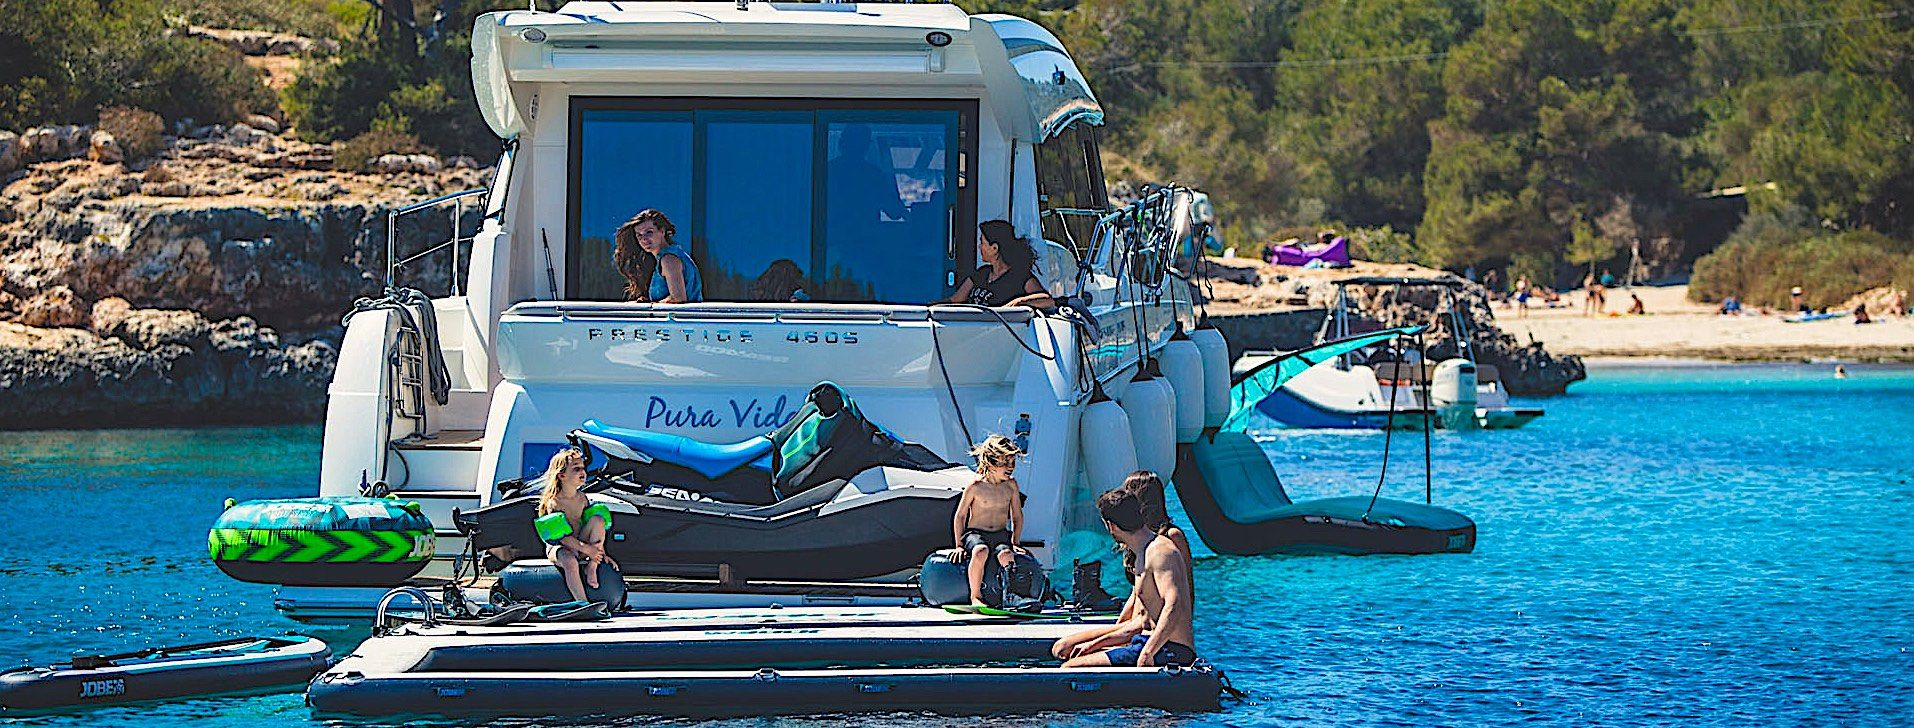 Yacht Platform Pool extention - Yacht Toys & Water Sports Equipment